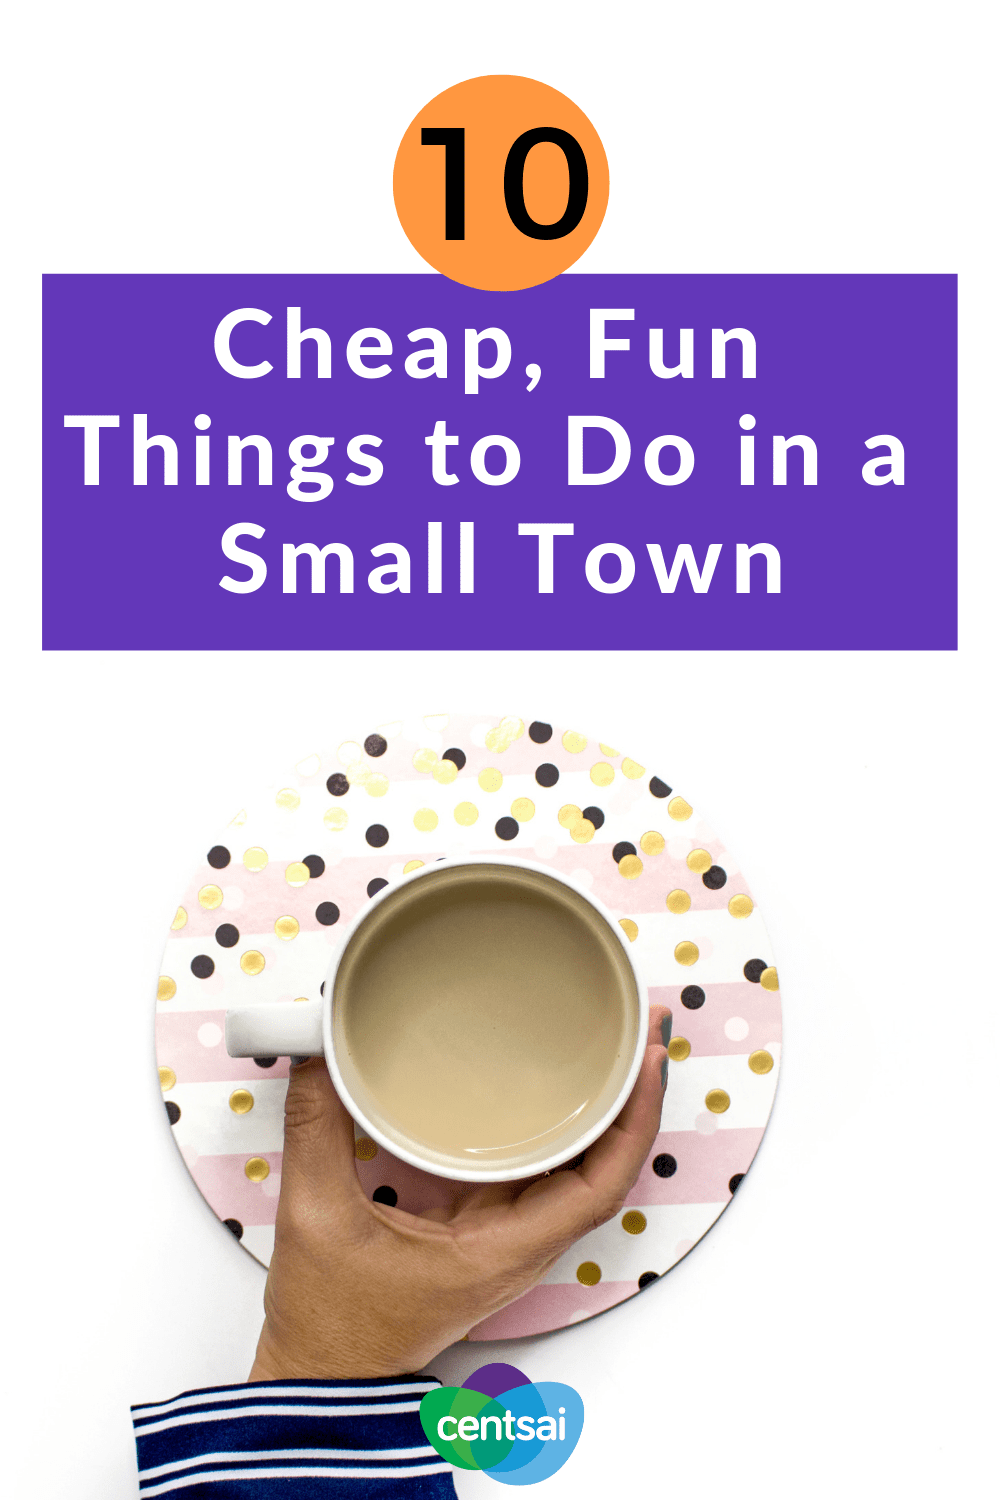 10 Cheap, Fun Things to Do in a Small Town. Small-town entertainment isn't as hard to come by as many people might think. Check out these fun things to do in a small town. #frugaltips #frugallivingtips #savinghacks #savingtips #frugality #lifestyle